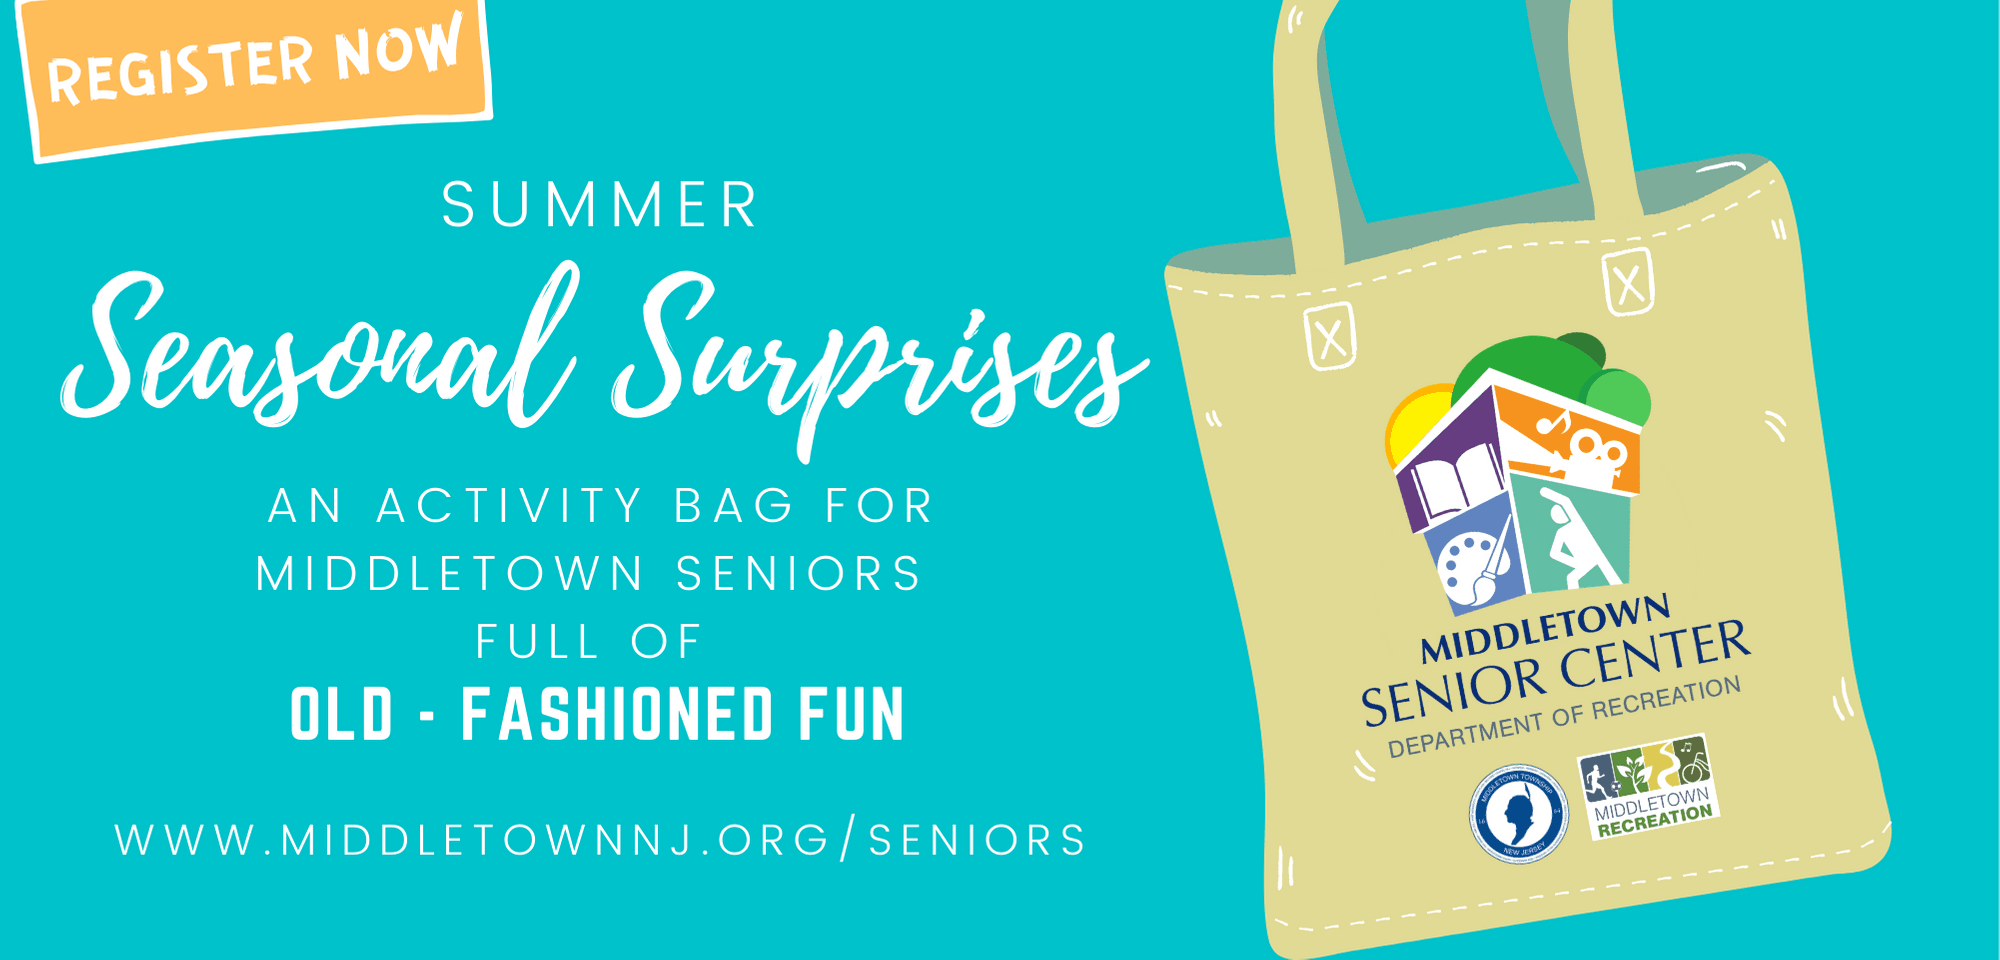 Register Now - Summer Seasonal Surprises